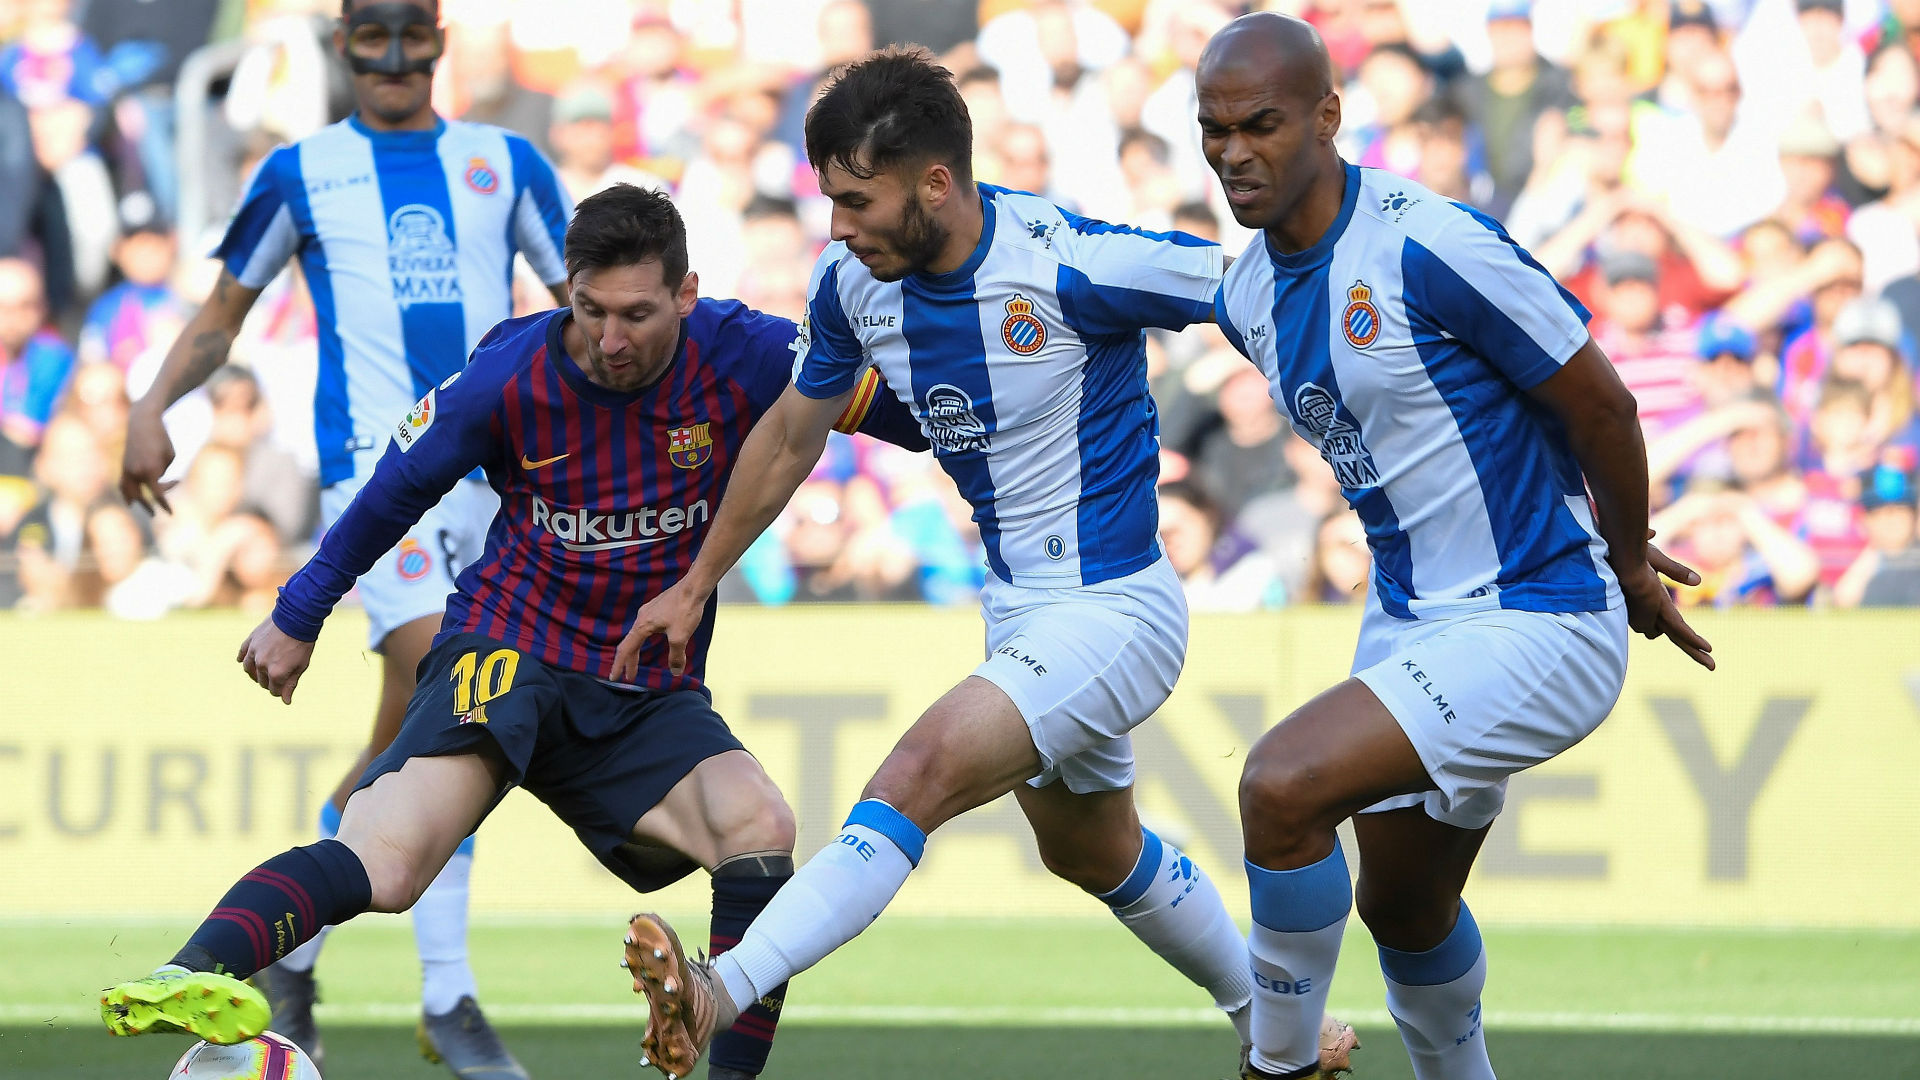 Espanyol vs. Barcelona - Football Match Report